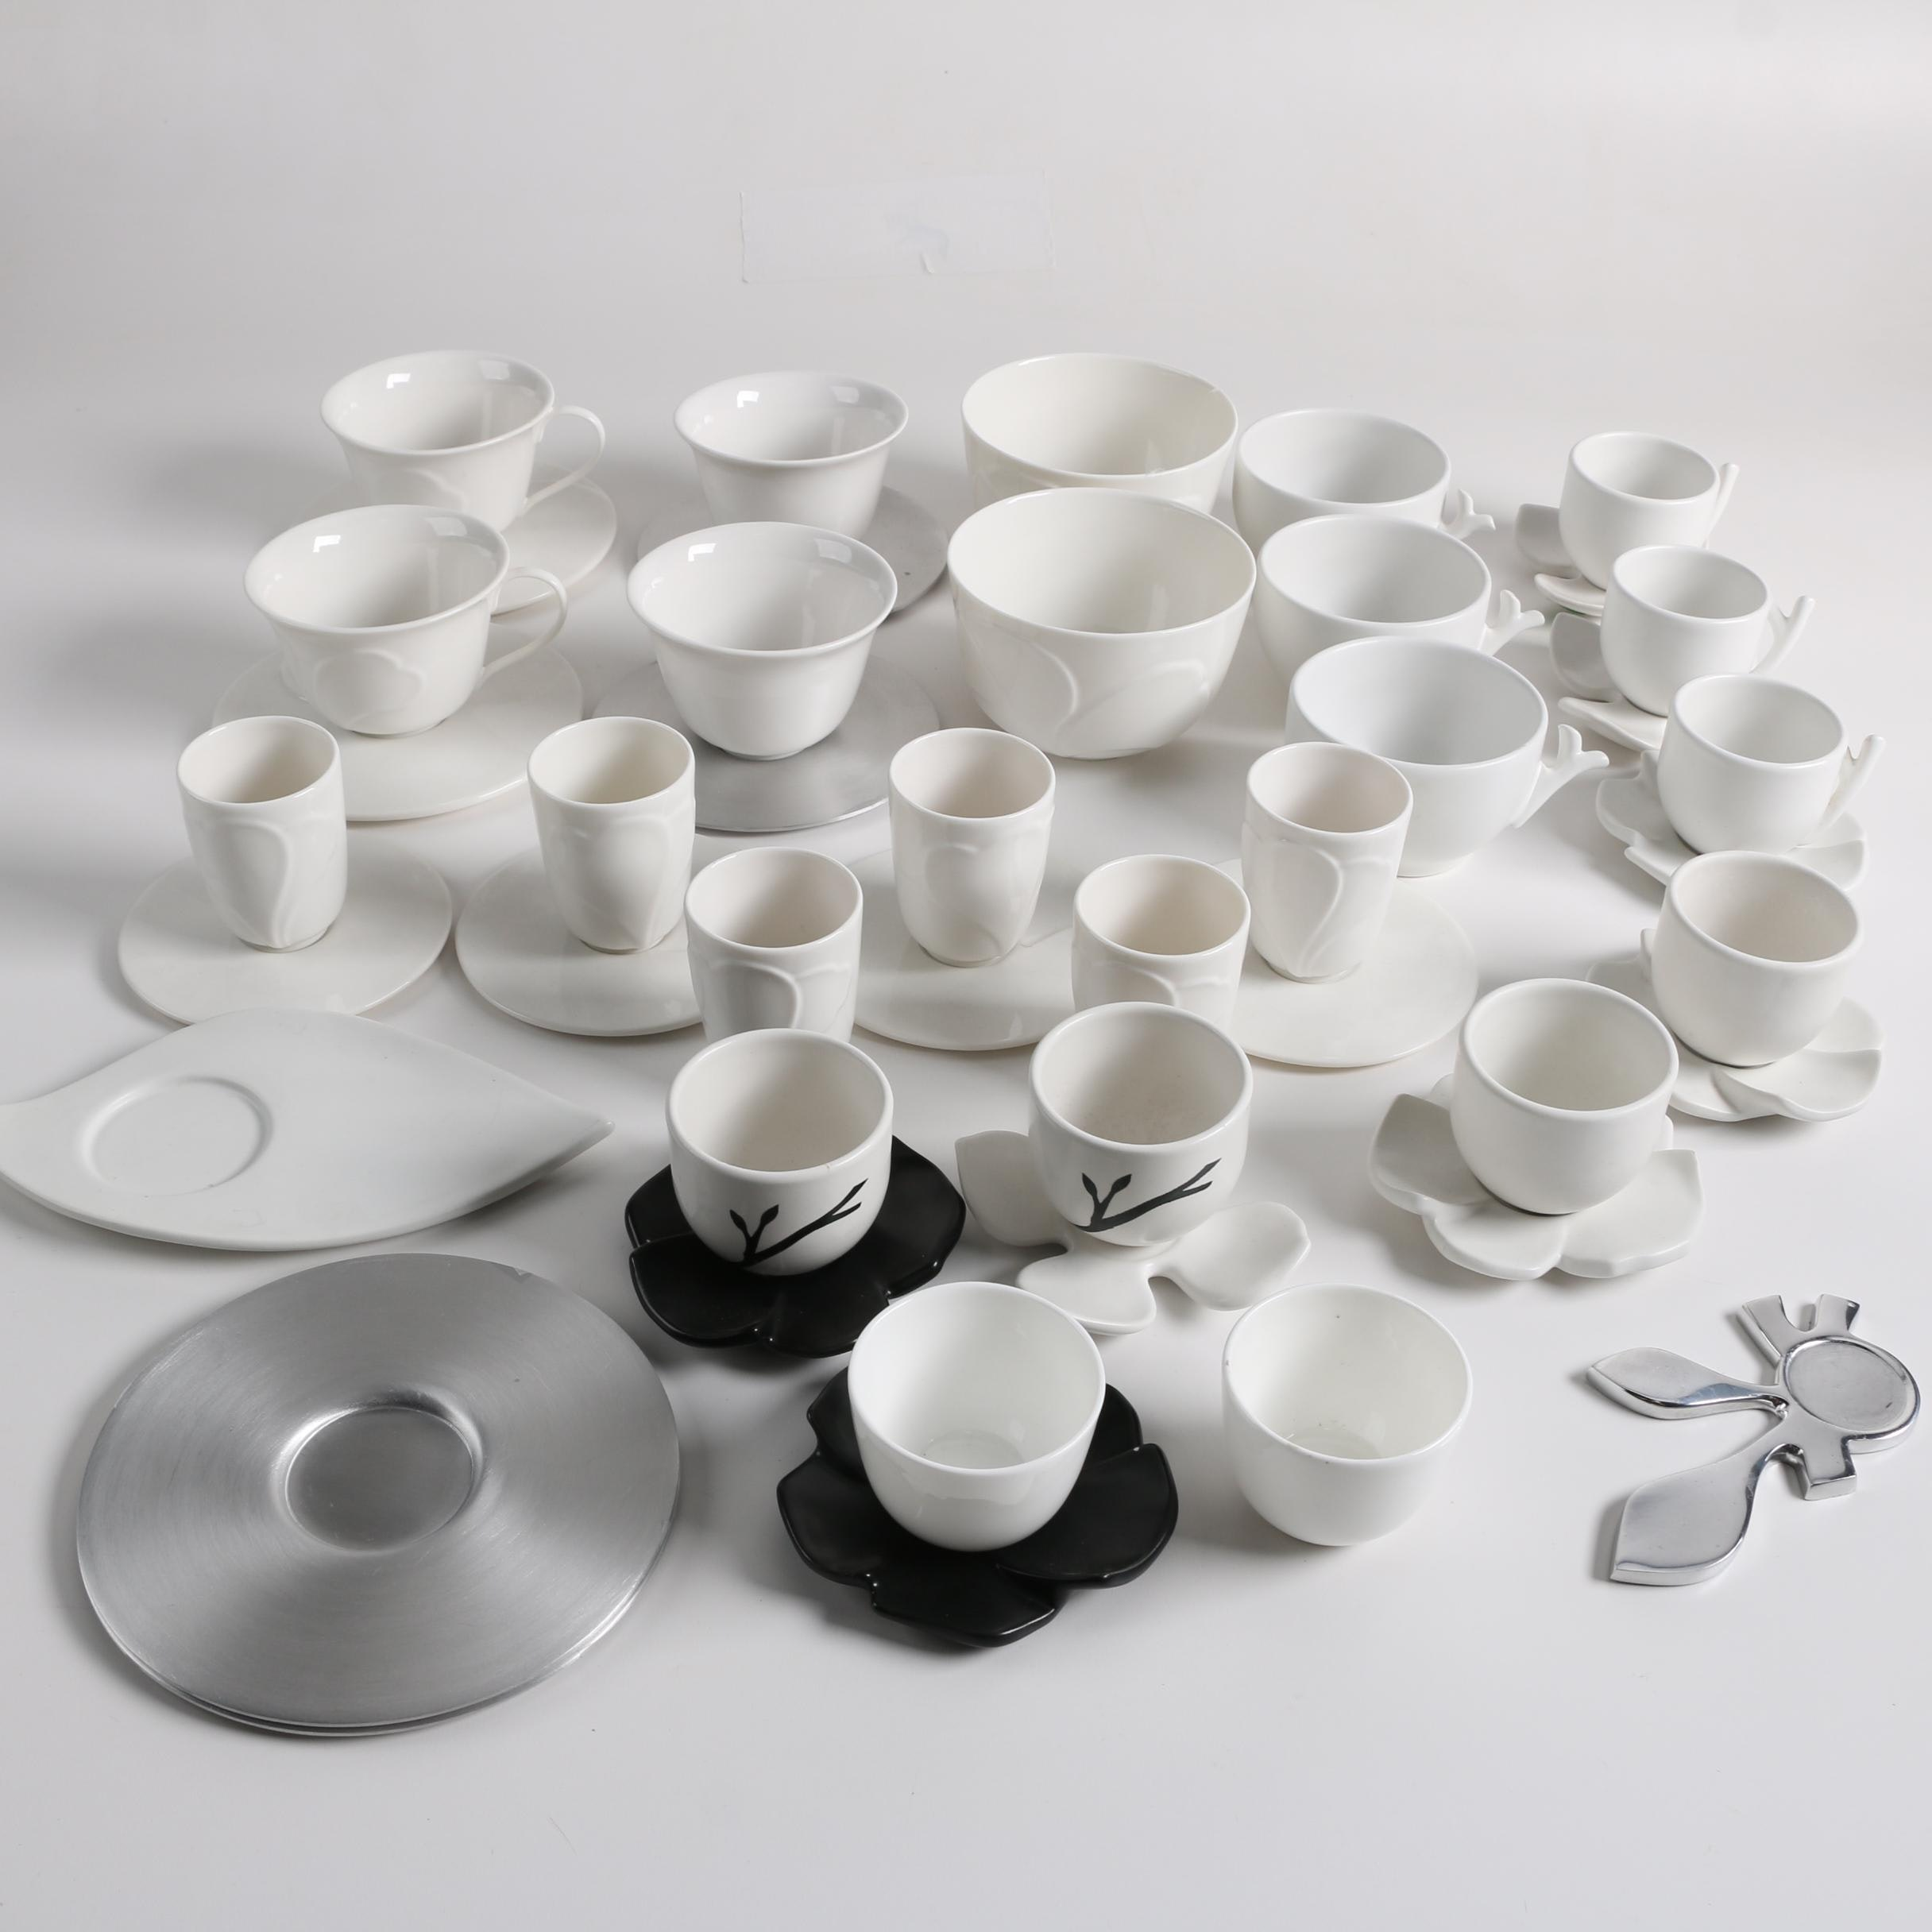 Contemporary Blue Leaves Ceramic Tea Bowls, Teacups, Saucers, and Other Items